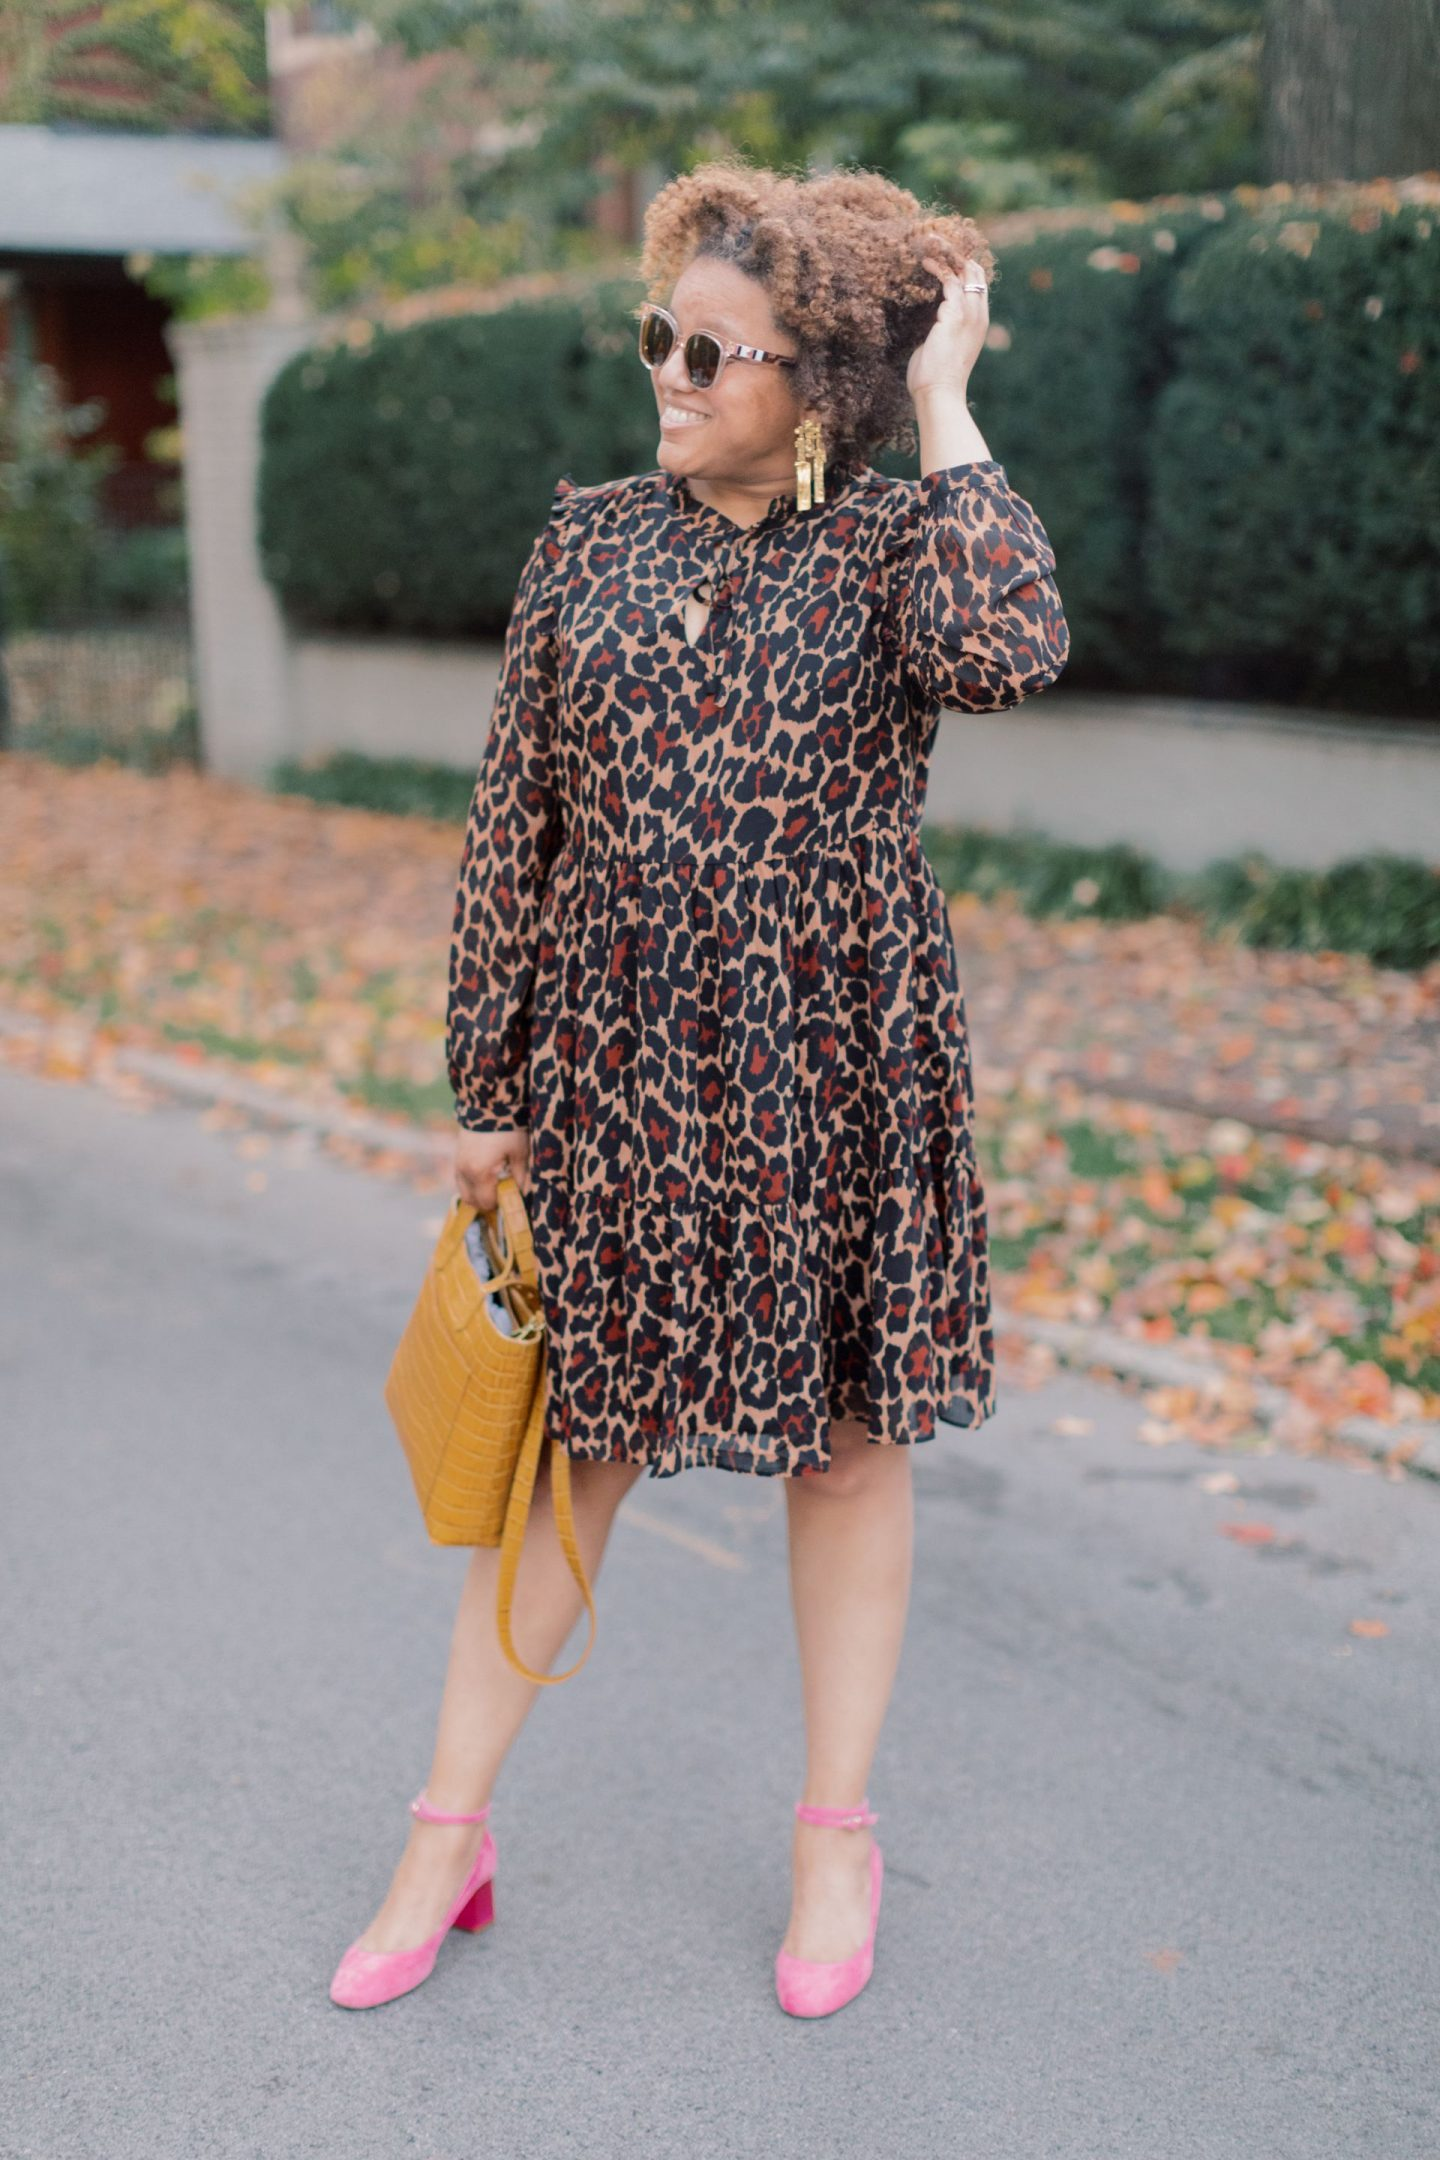 Leopard Print Clothing by popular Kentucky fashion blog, Really Rynetta: image of a woman wearing a J.Crew Tie-neck tiered dress in leopard crinkle chiffon, pink suede block heel Mary Jane shoes, Kendra Scott Holland Statement Earrings, and holding a Madewell The Small Transport Crossbody: Woven Leather Edition.